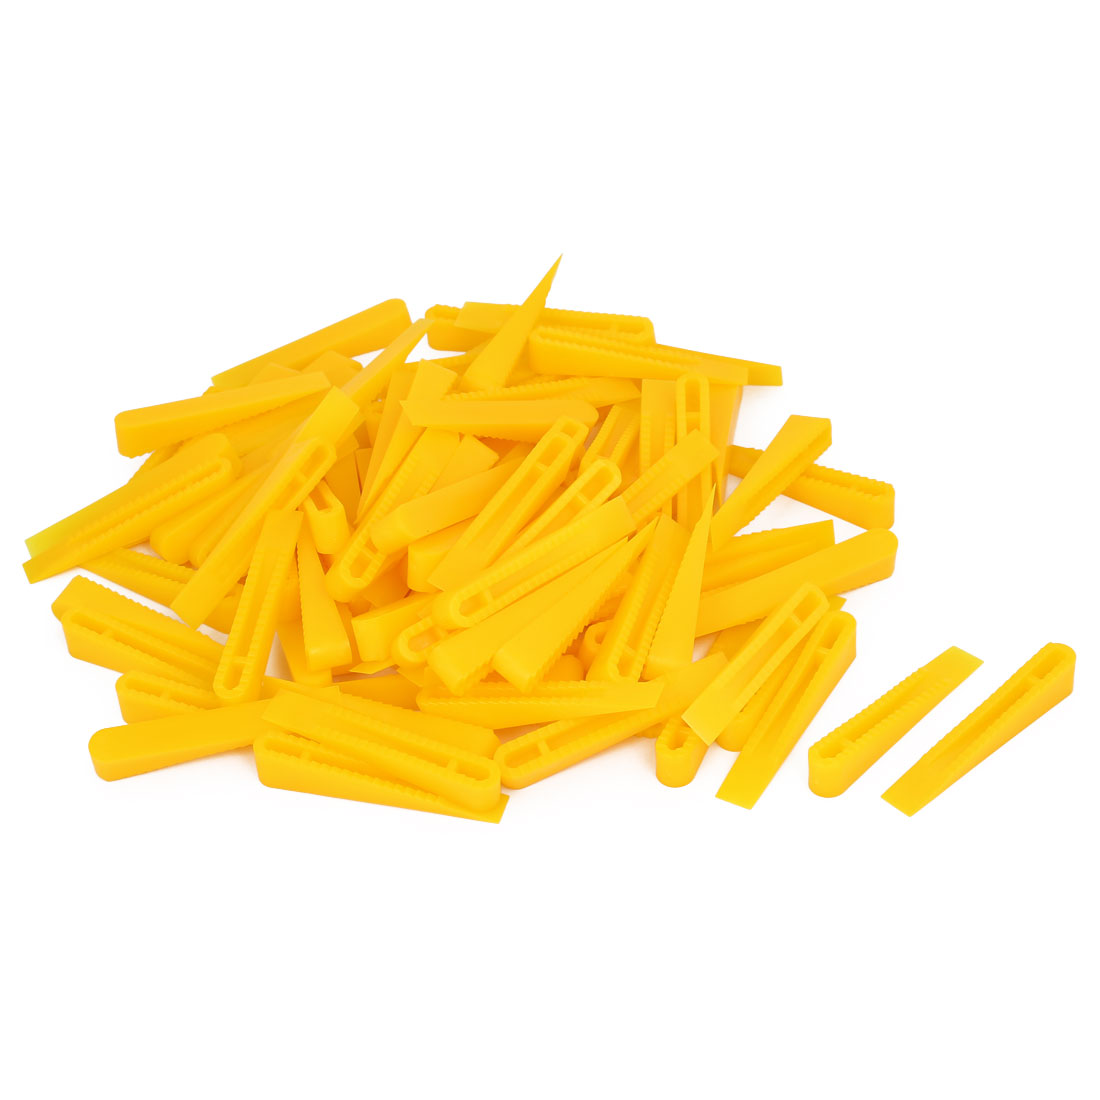 Wall Floor Tile Flat Leveling System Balance Wedges Yellow 58mmx9mmx10mm 100pcs